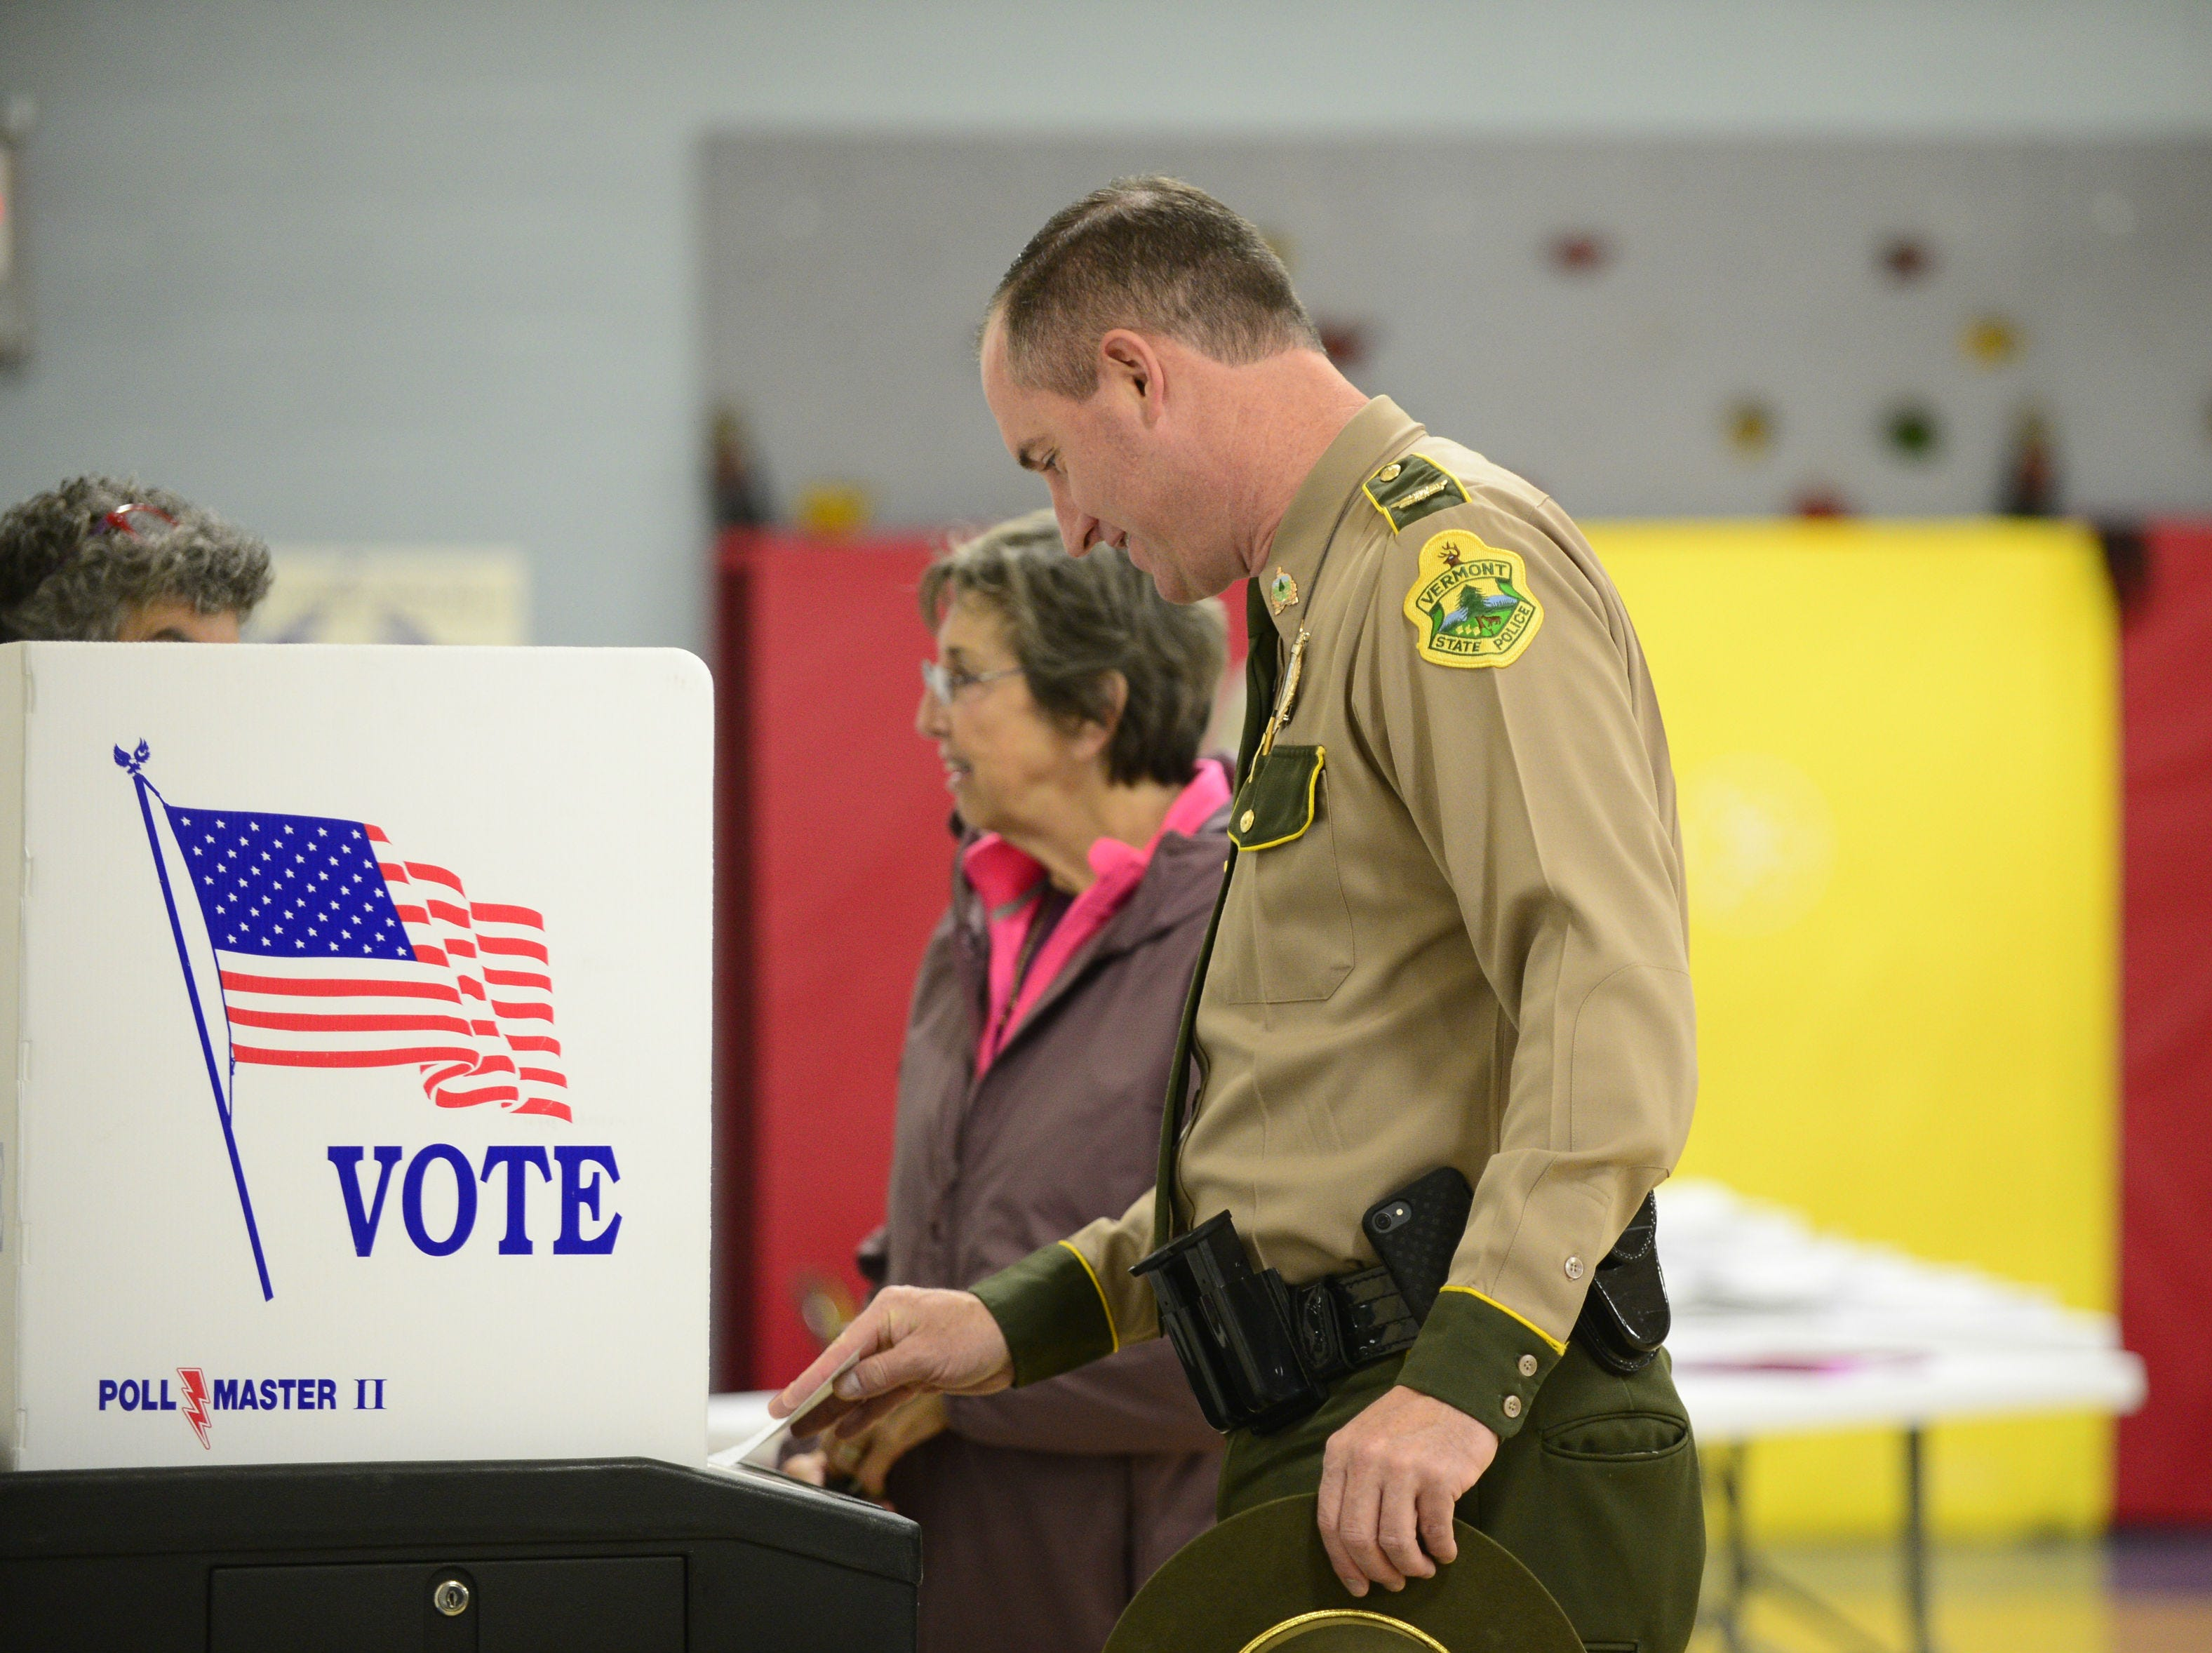 Col. Matthew Birmingham, director of the Vermont State Police, casts his ballot on Nov. 6, 2018, in the gym at Orchard School in South Burlington